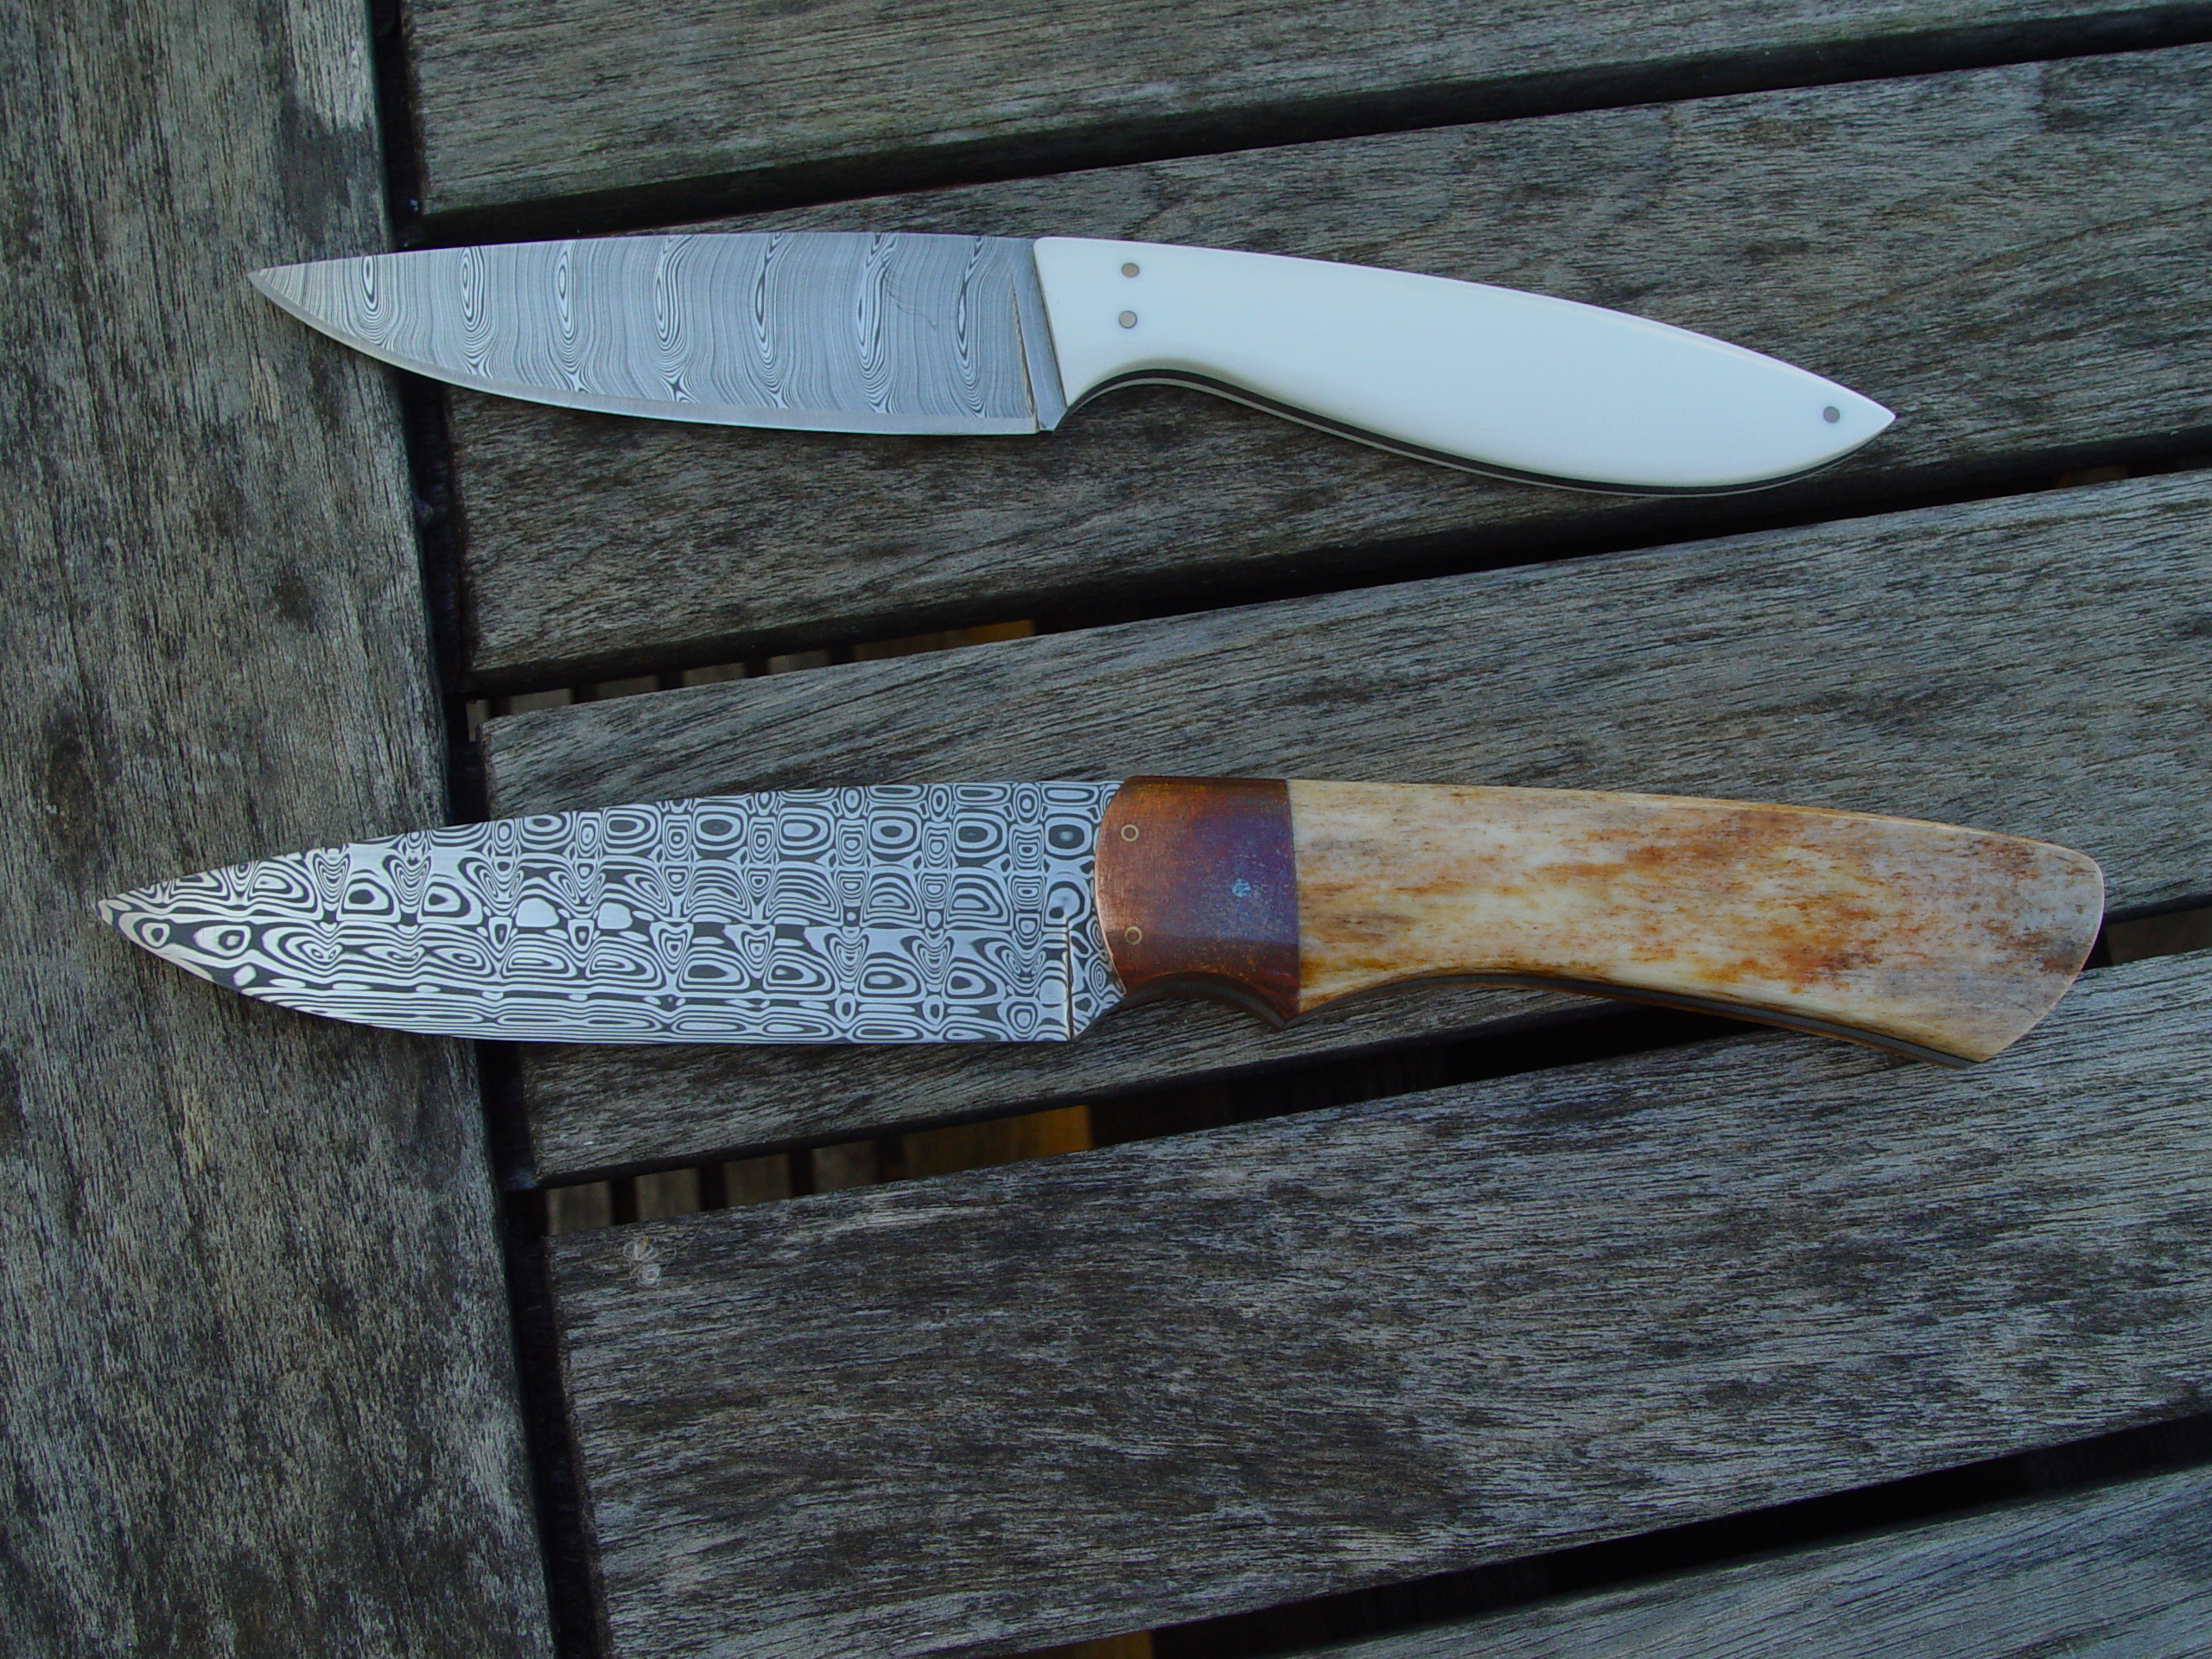 Hunter and Utility blades